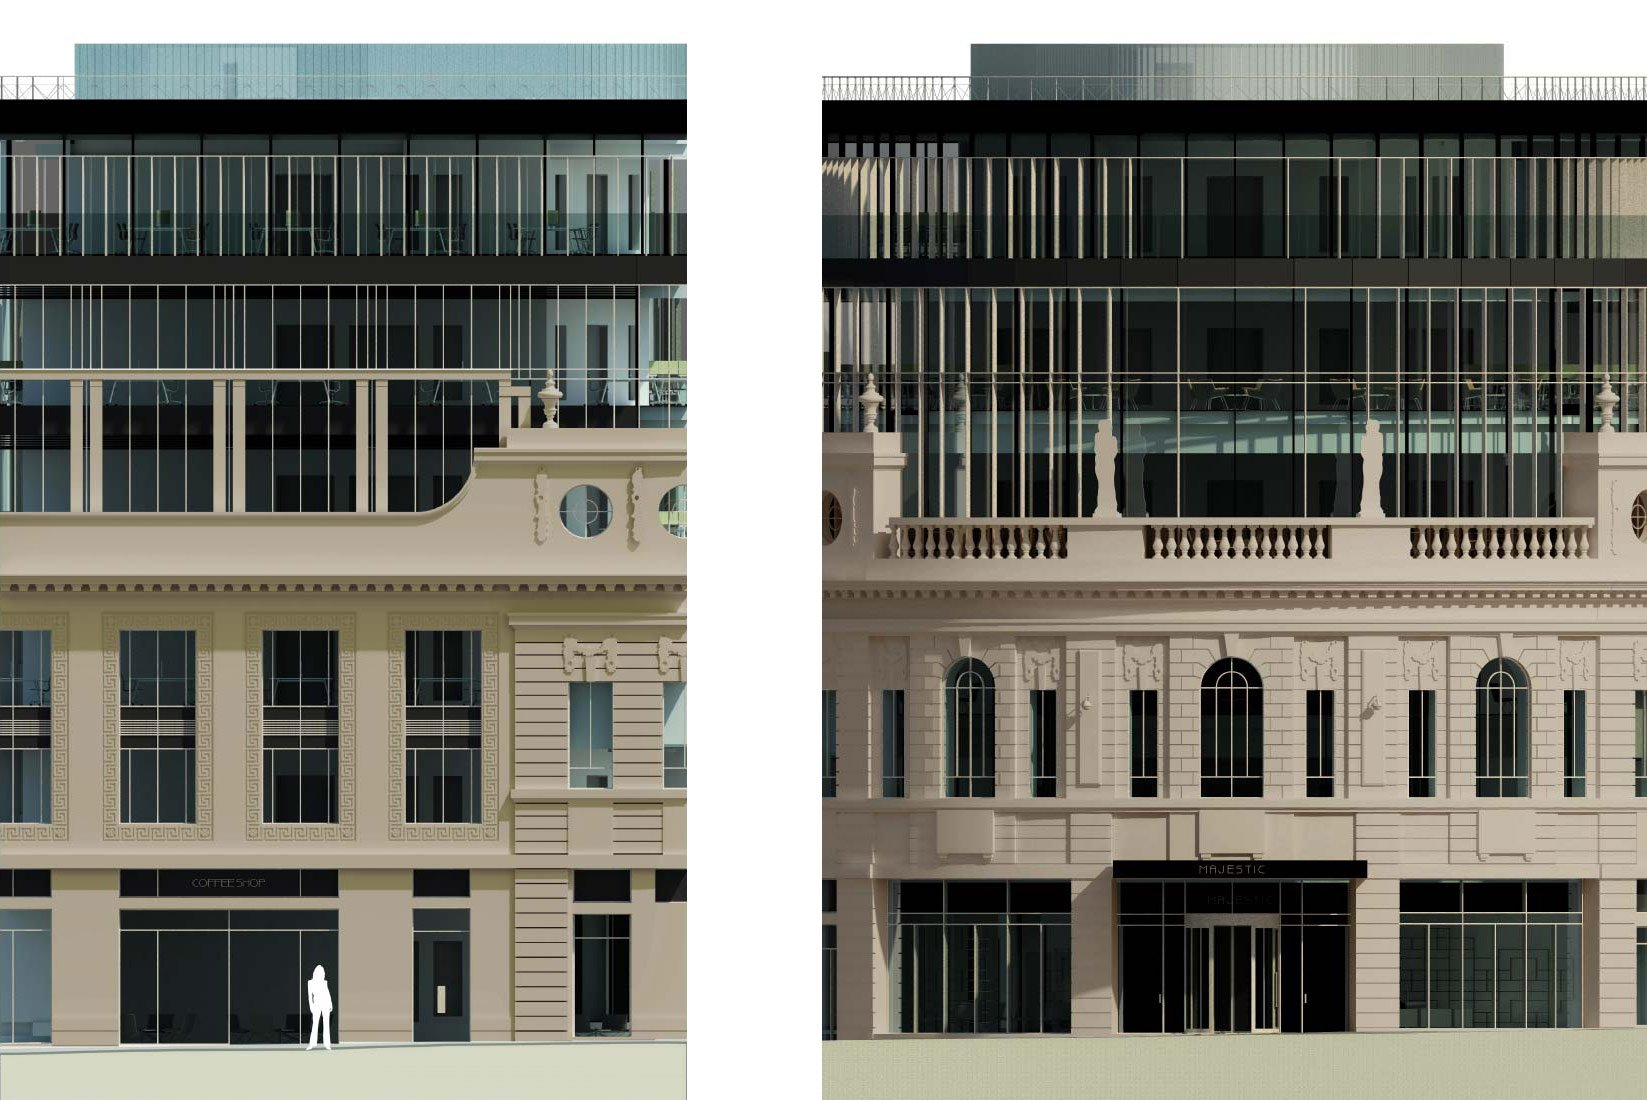 The Majestic, Leeds, Entrance Elevation & Typical Side Bay Elevation